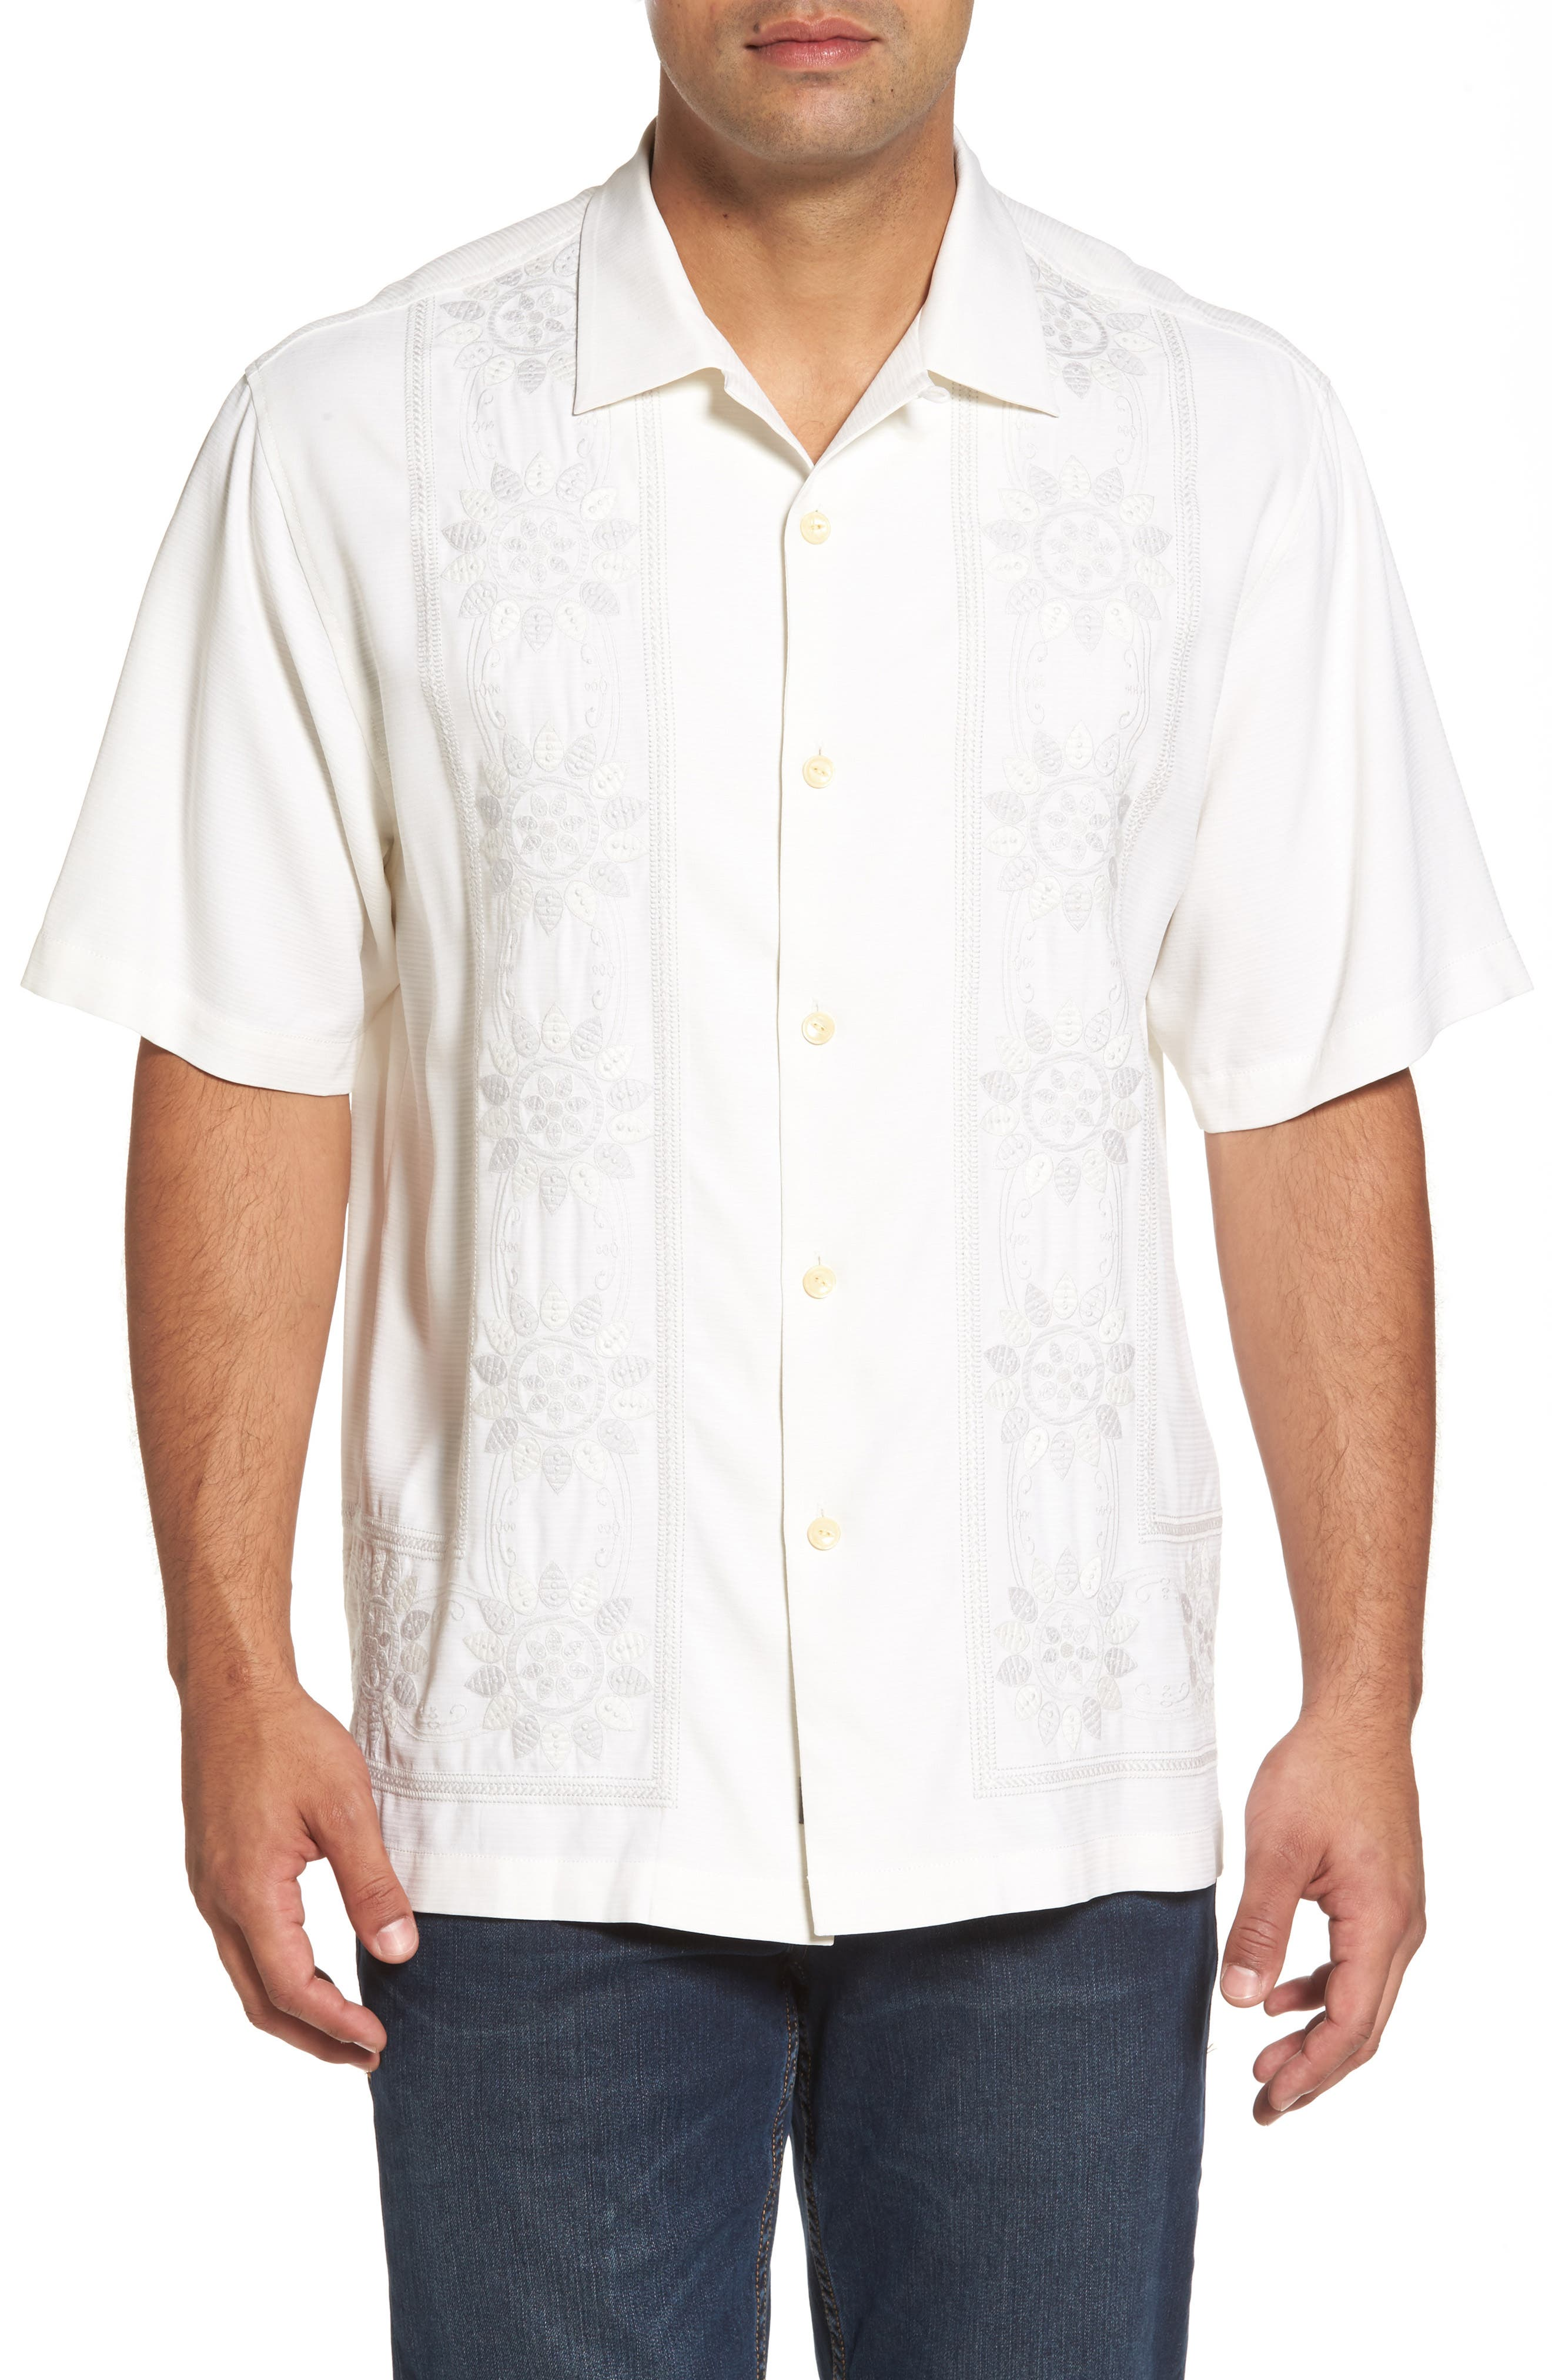 Main Image - Tommy Bahama Tangier Tiles Embroidered Silk Woven Shirt